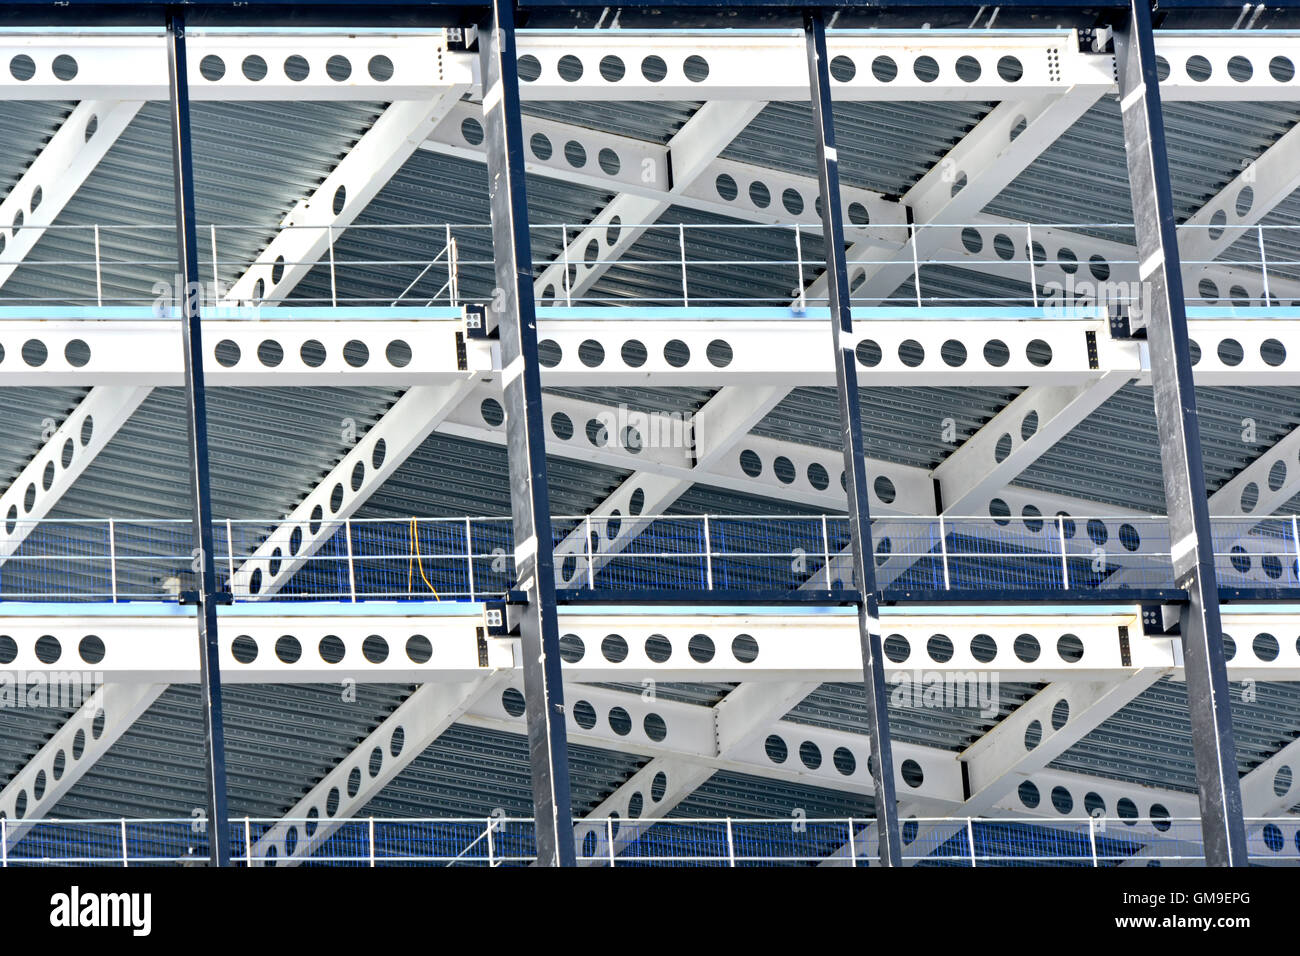 Steel frame office building under consruction beside East Croydon UK train station seen as a pattern & shapes image circles squares & rectangles etc Stock Photo